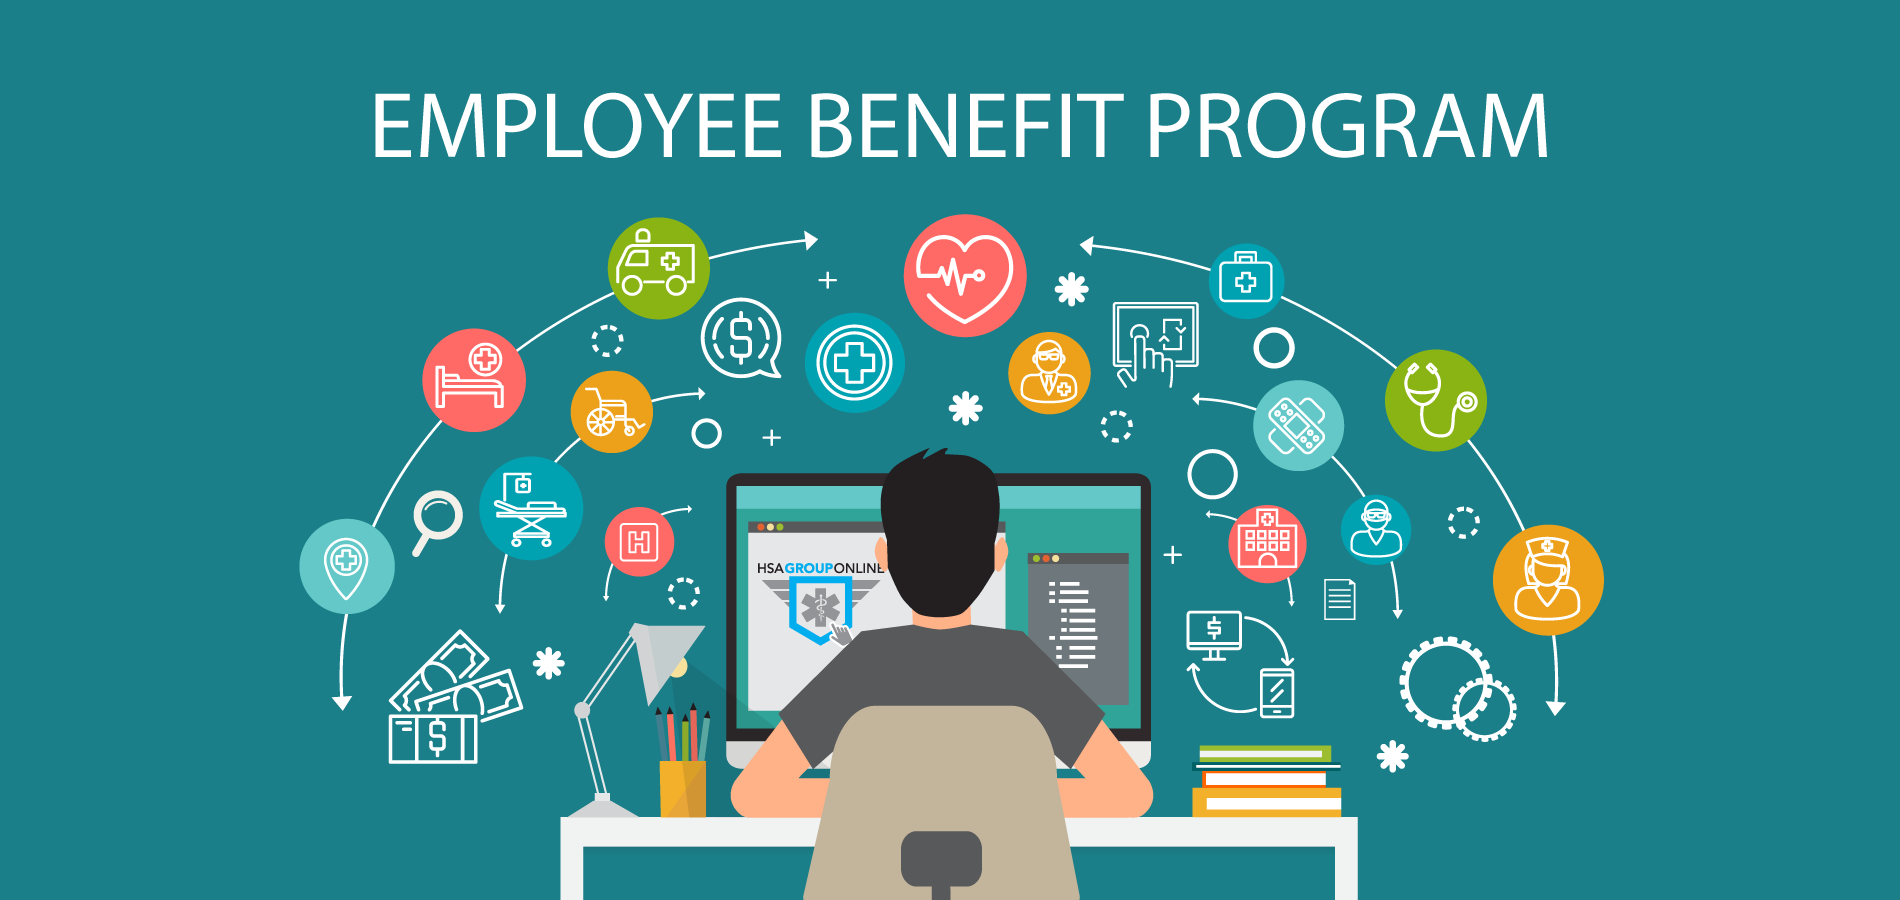 Designing an Employee Benefit Program